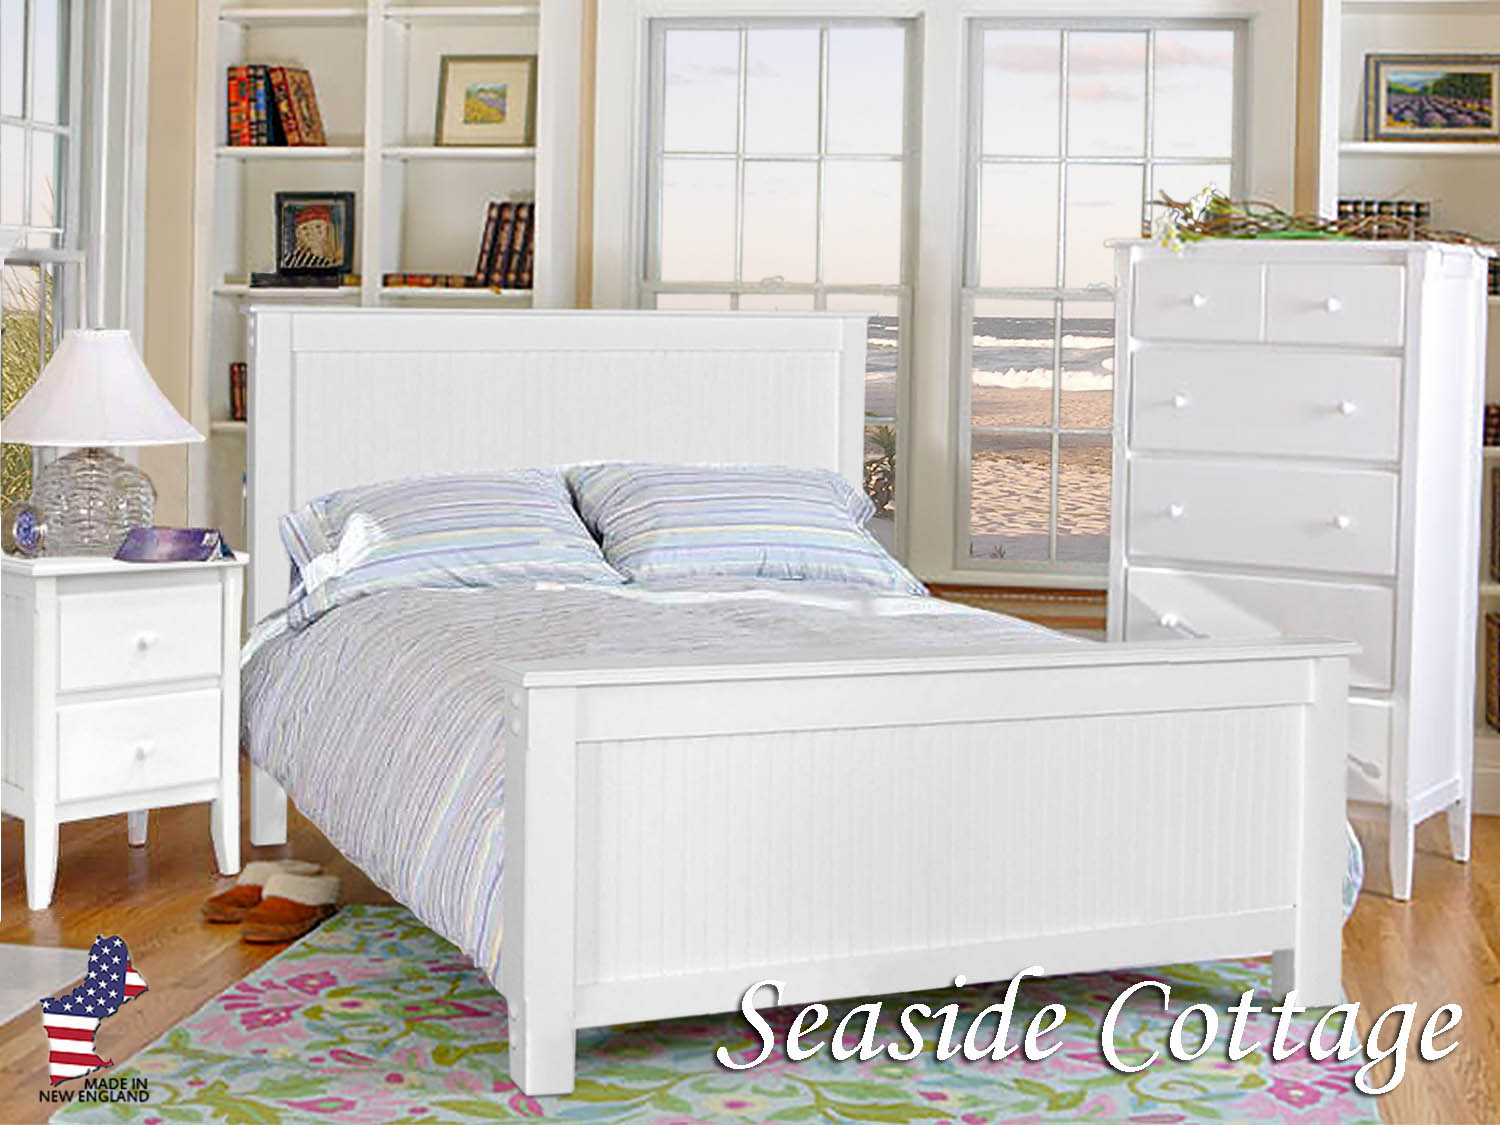 Barbo's Furniture, Seaside Cottage, Bedroom, Master, Kids, Guest, Cape Cod, Coastal, Casual, Solid, Wood, Poplar, Painted, White, Made in the U.S.A., New England, Dresser, Mirror, Chest, Nightstand, Queen, King, Full, Twin, Bed